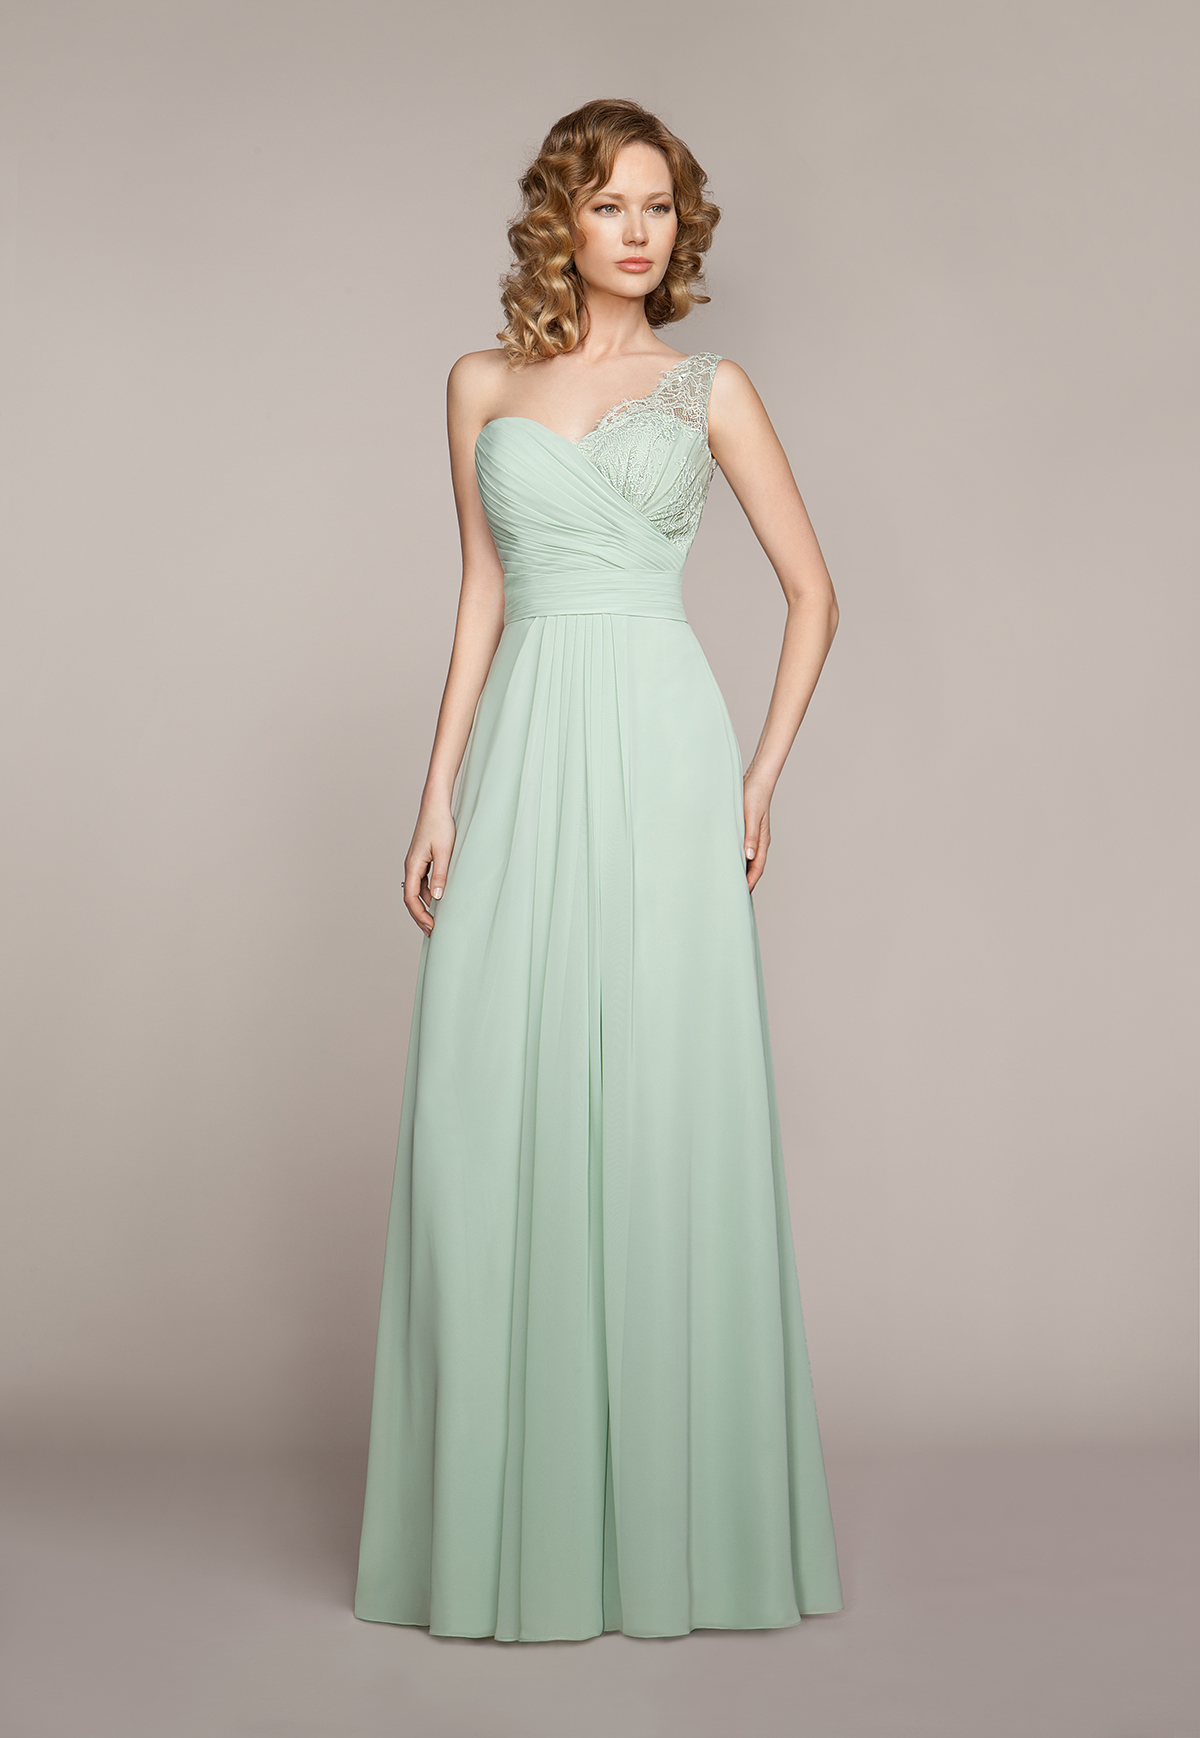 Treat your favourite girls to a mark lesley bridesmaid dress love